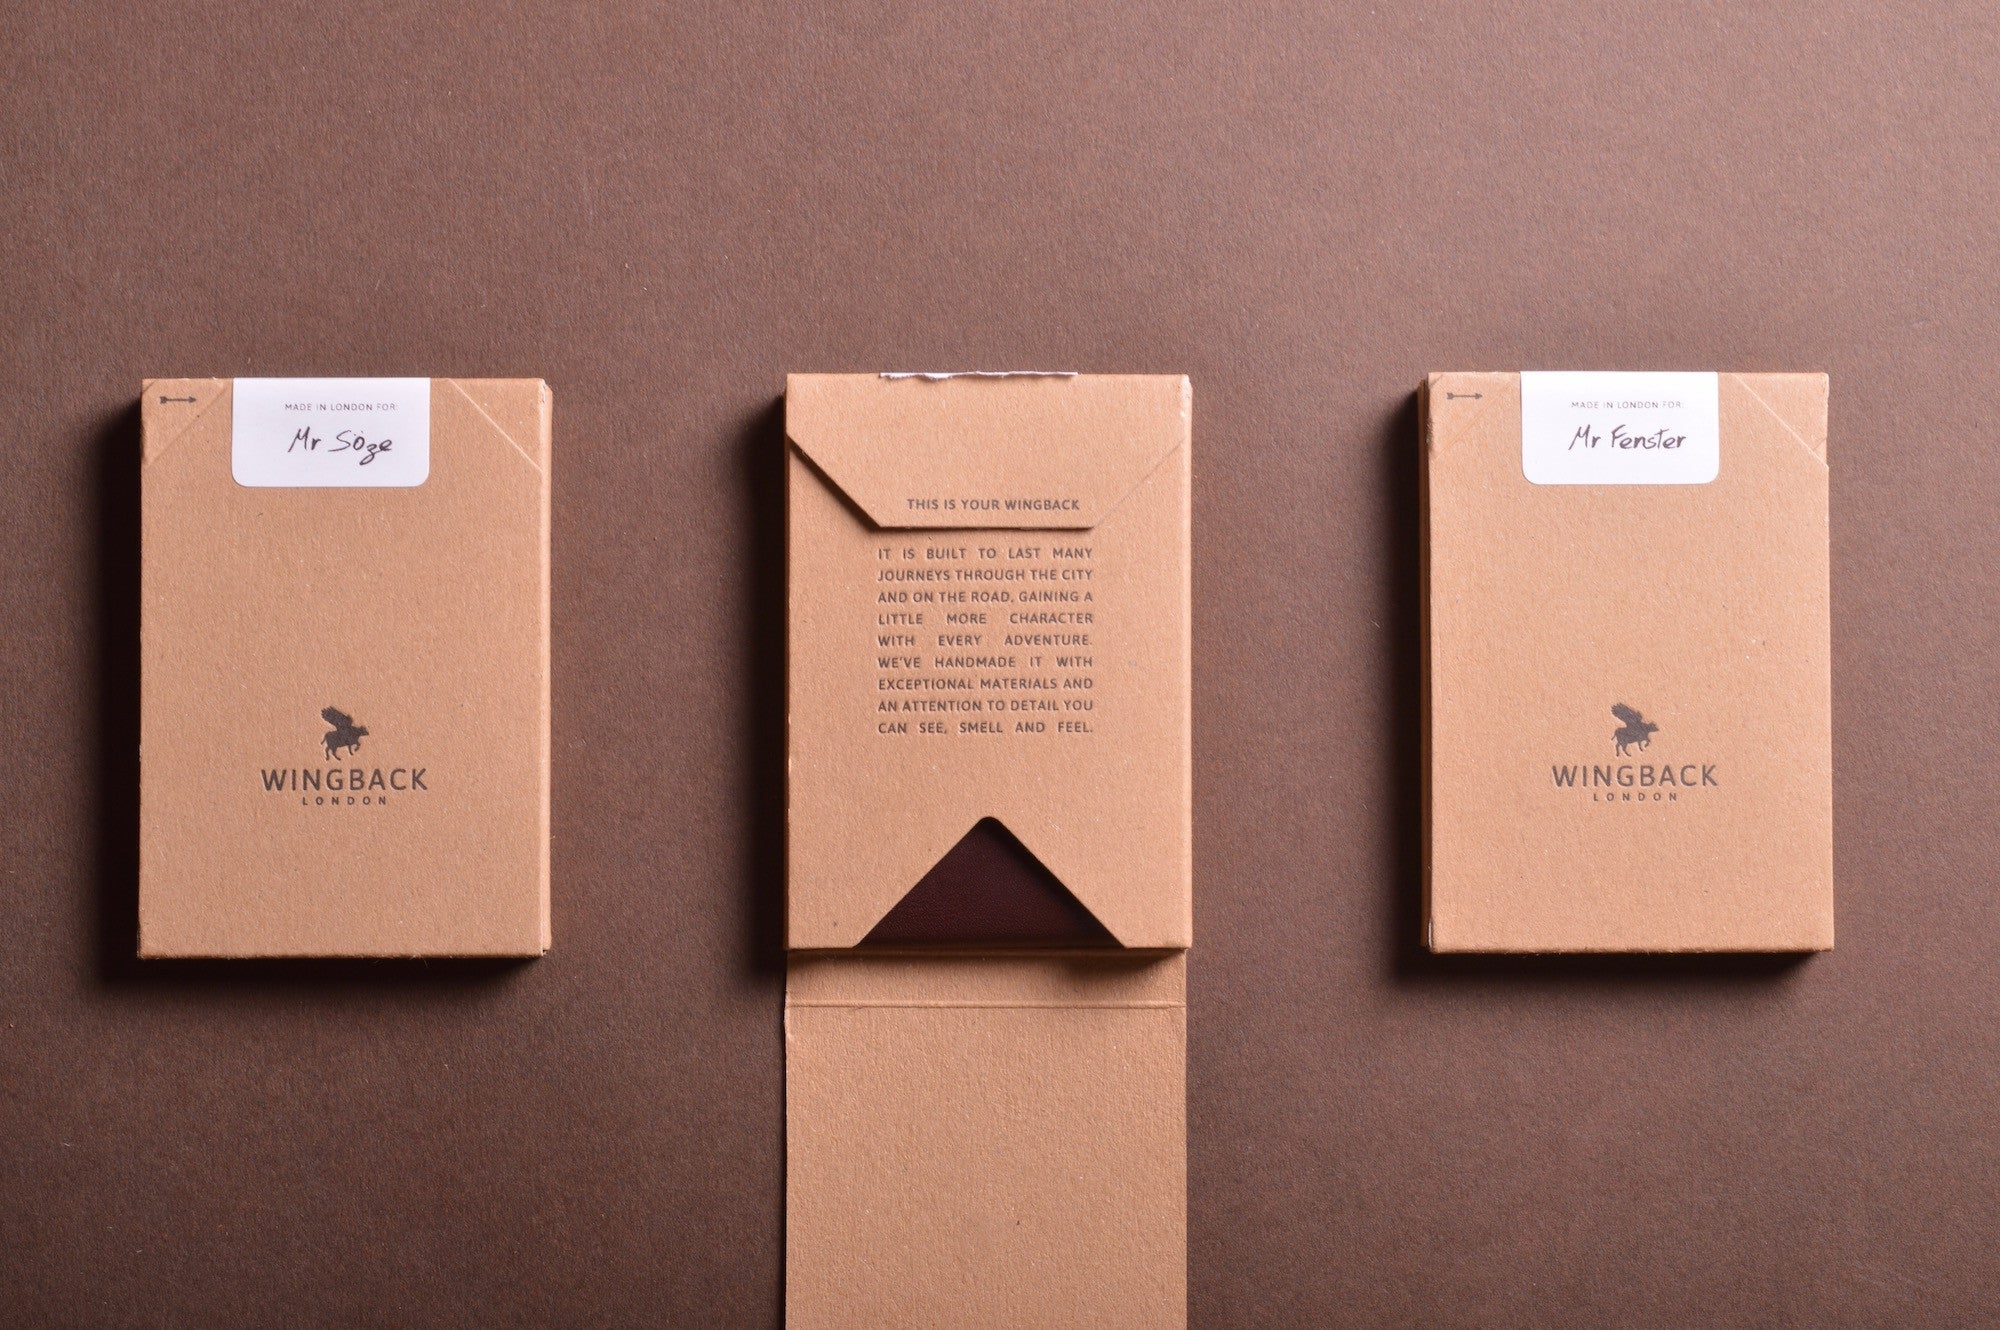 NEW PACKAGING: Recycled and recyclable - WINGBACK